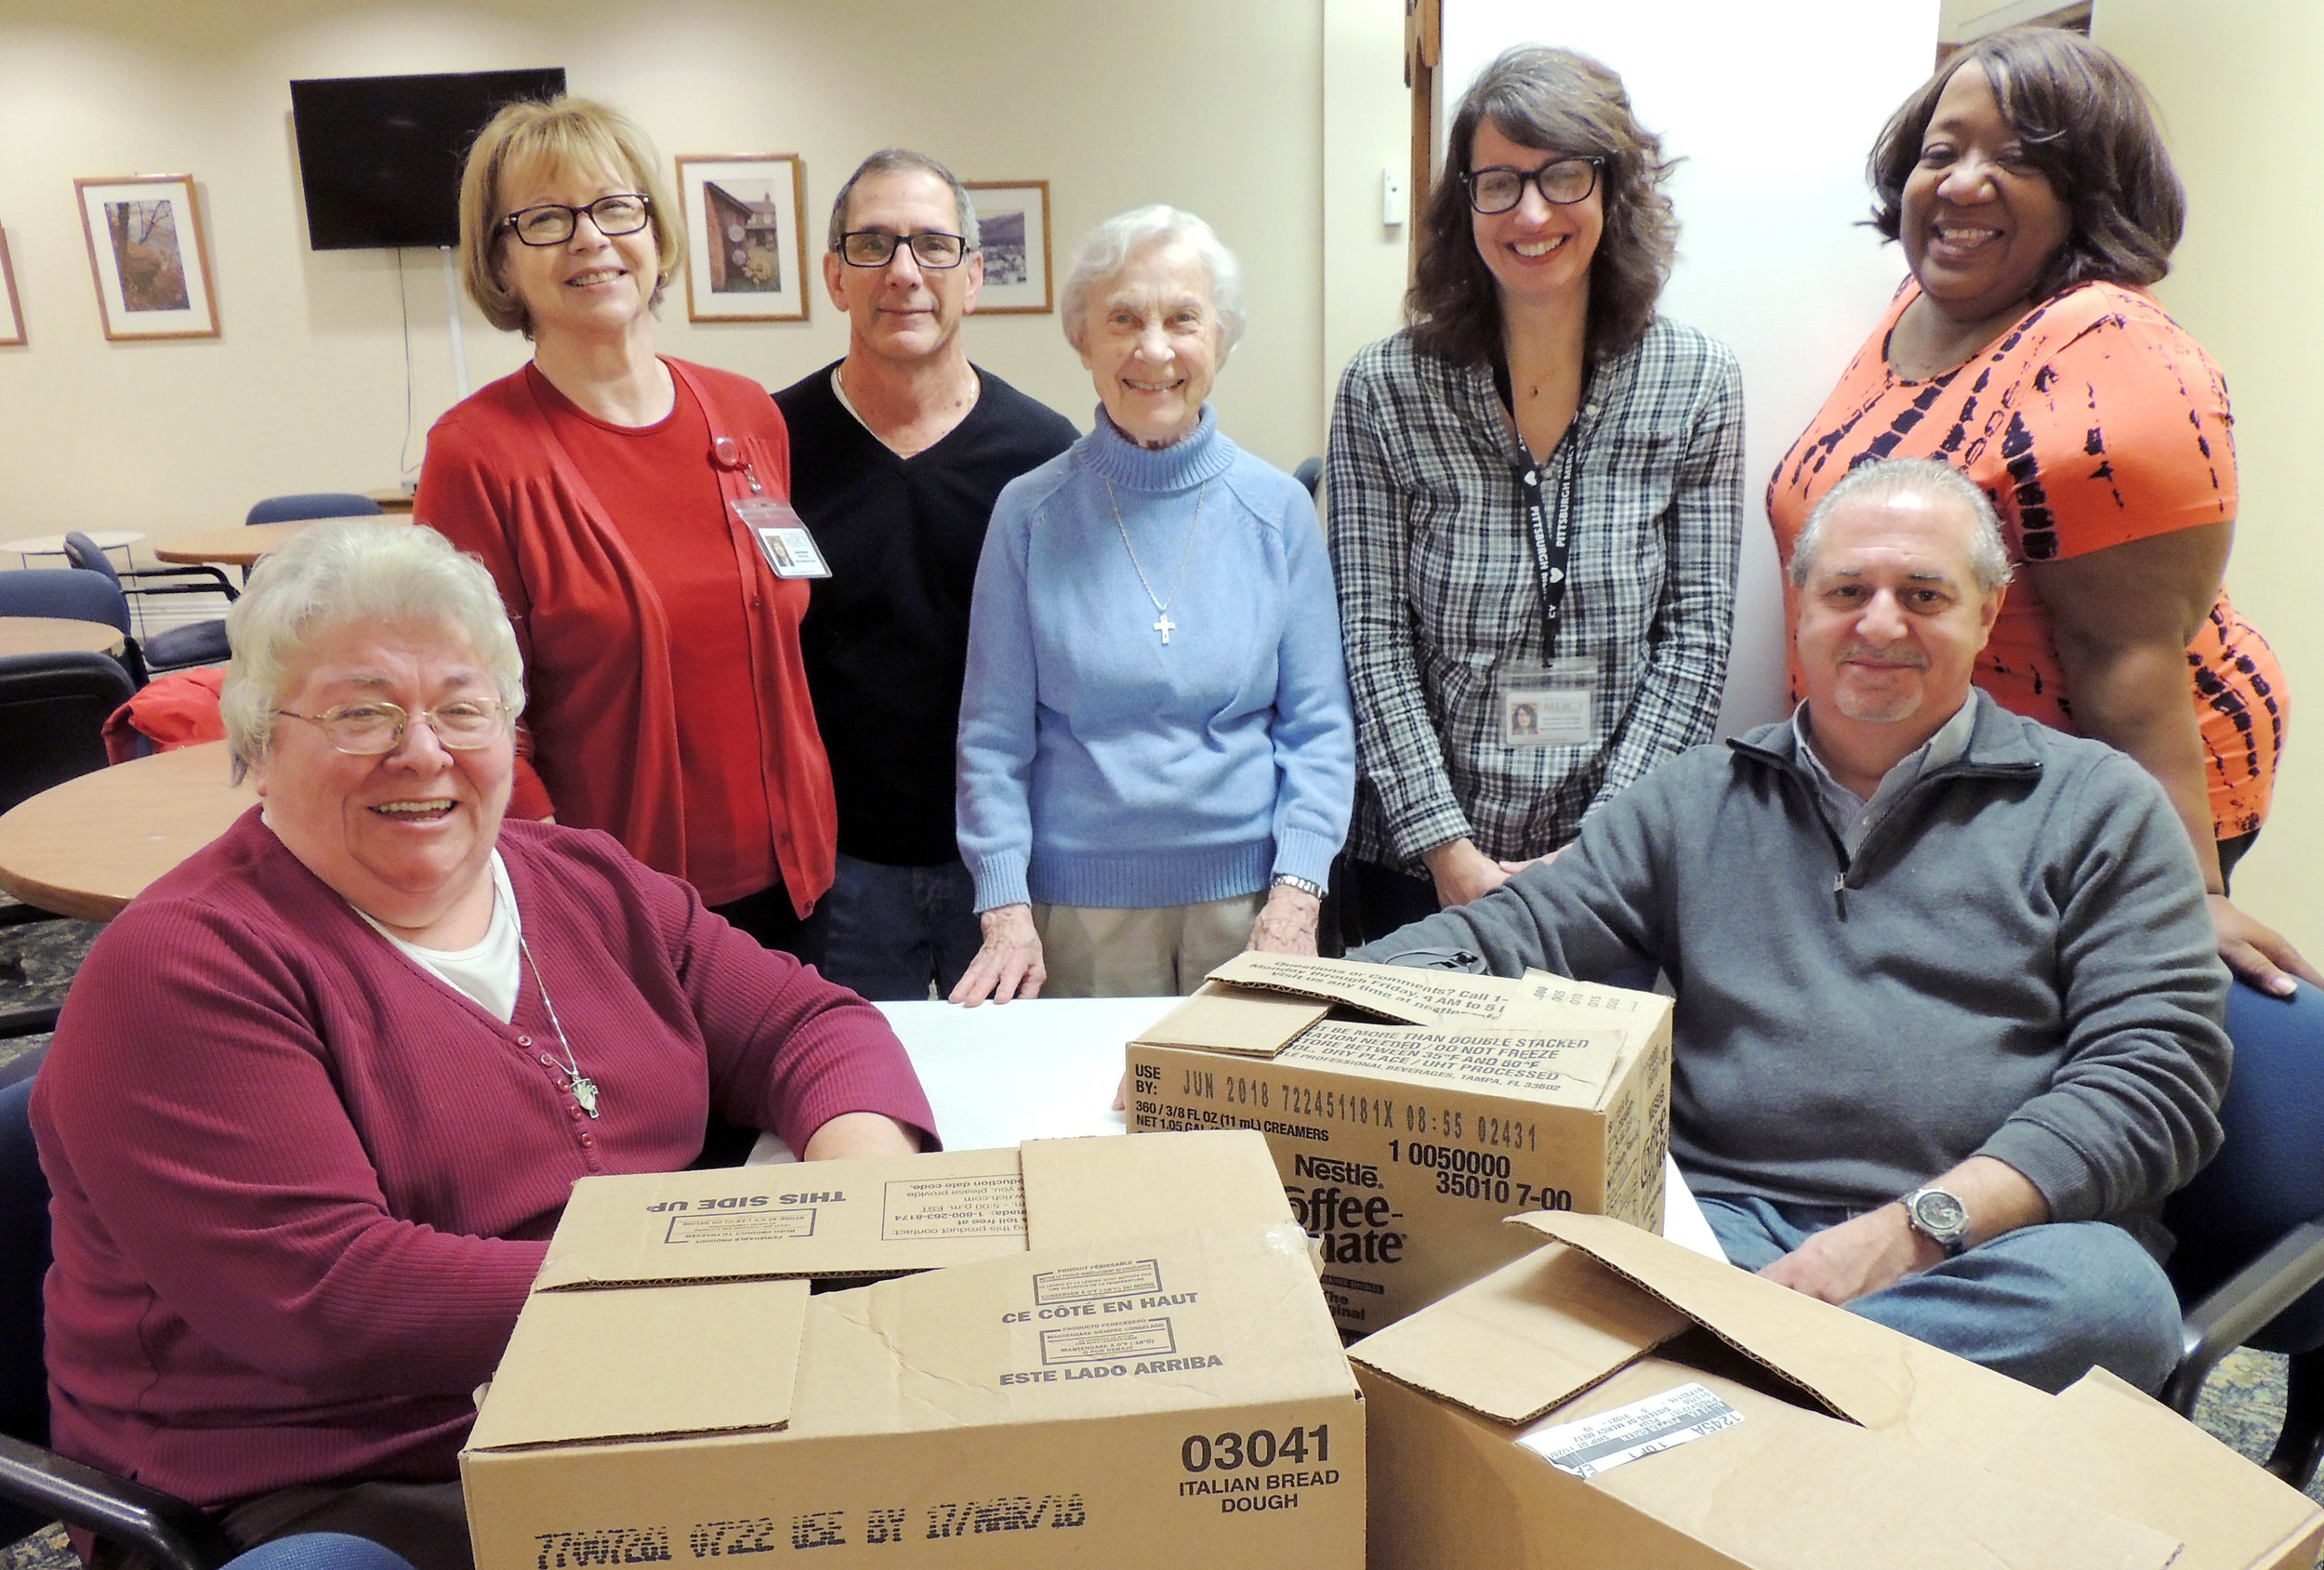 Sister Rebecca Nolan, OP; Linda Burkett; Joe Solomon; Sister Lucille Holtz, RSM; Caterina Natalia; Linda Marlow; and Frank A. Borelli prepared 100 sandwiches for distribution to persons who are experiencing homelessness by outreach teams at Pittsburgh Mercy's Operation Safety Net (Photo © 2018 by Micaela Young for Pittsburgh Mercy. Used with permission.)